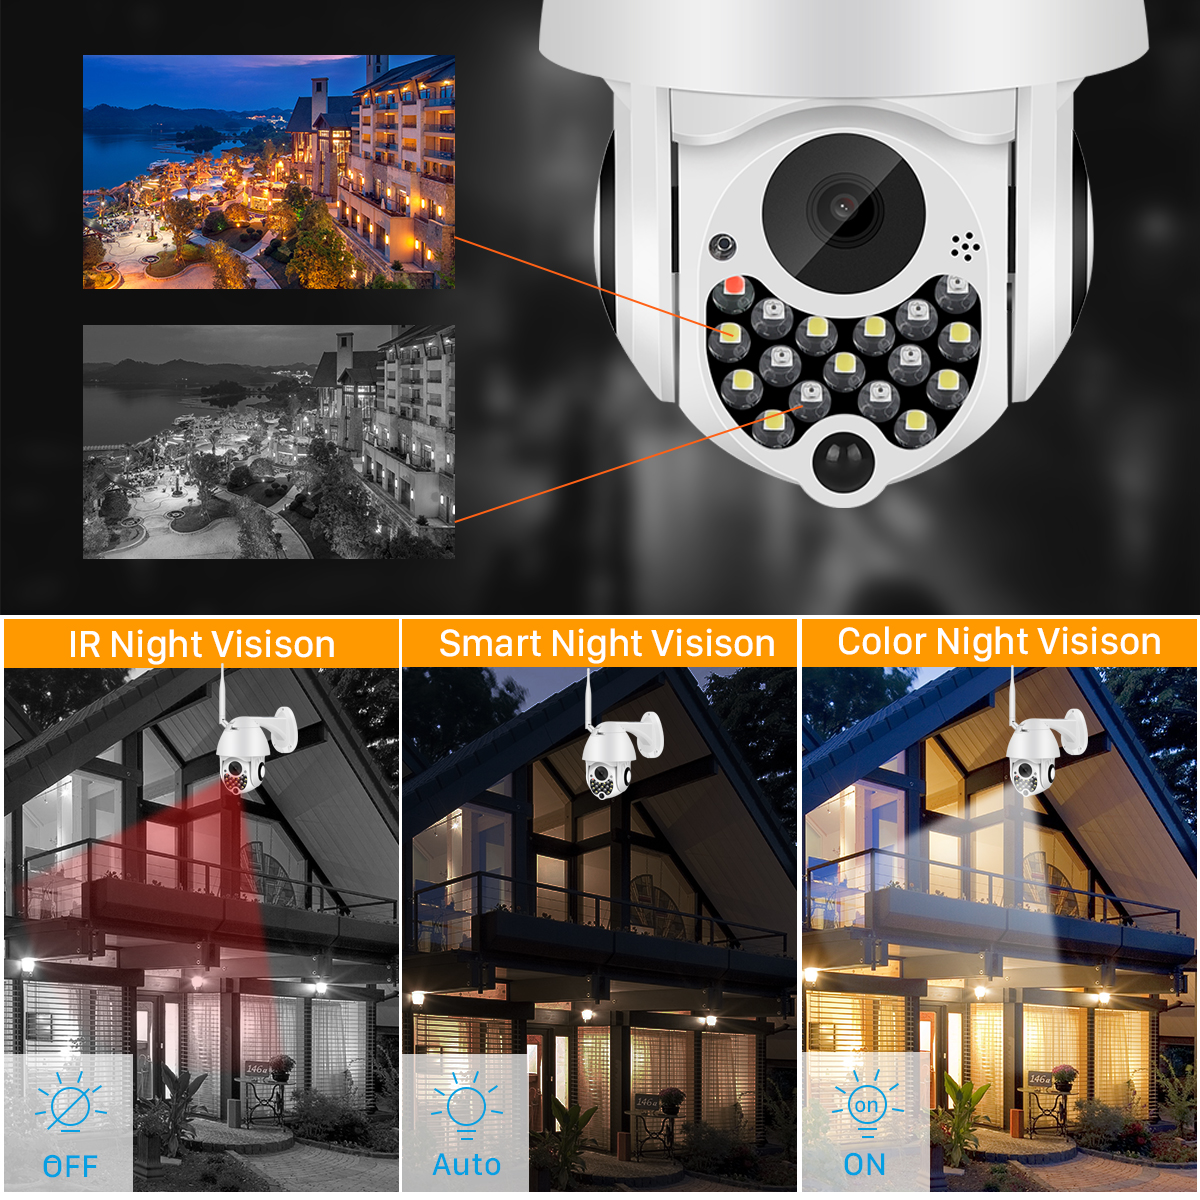 H7d9621afc5b34b7297efe4a81a71eb4d6 1080P Outdoor Wifi PTZ Camera with Siren Light Auto Tracking Cloud Home Security IP Camera 2MP 4X Digital Zoom Speed Dome Camera